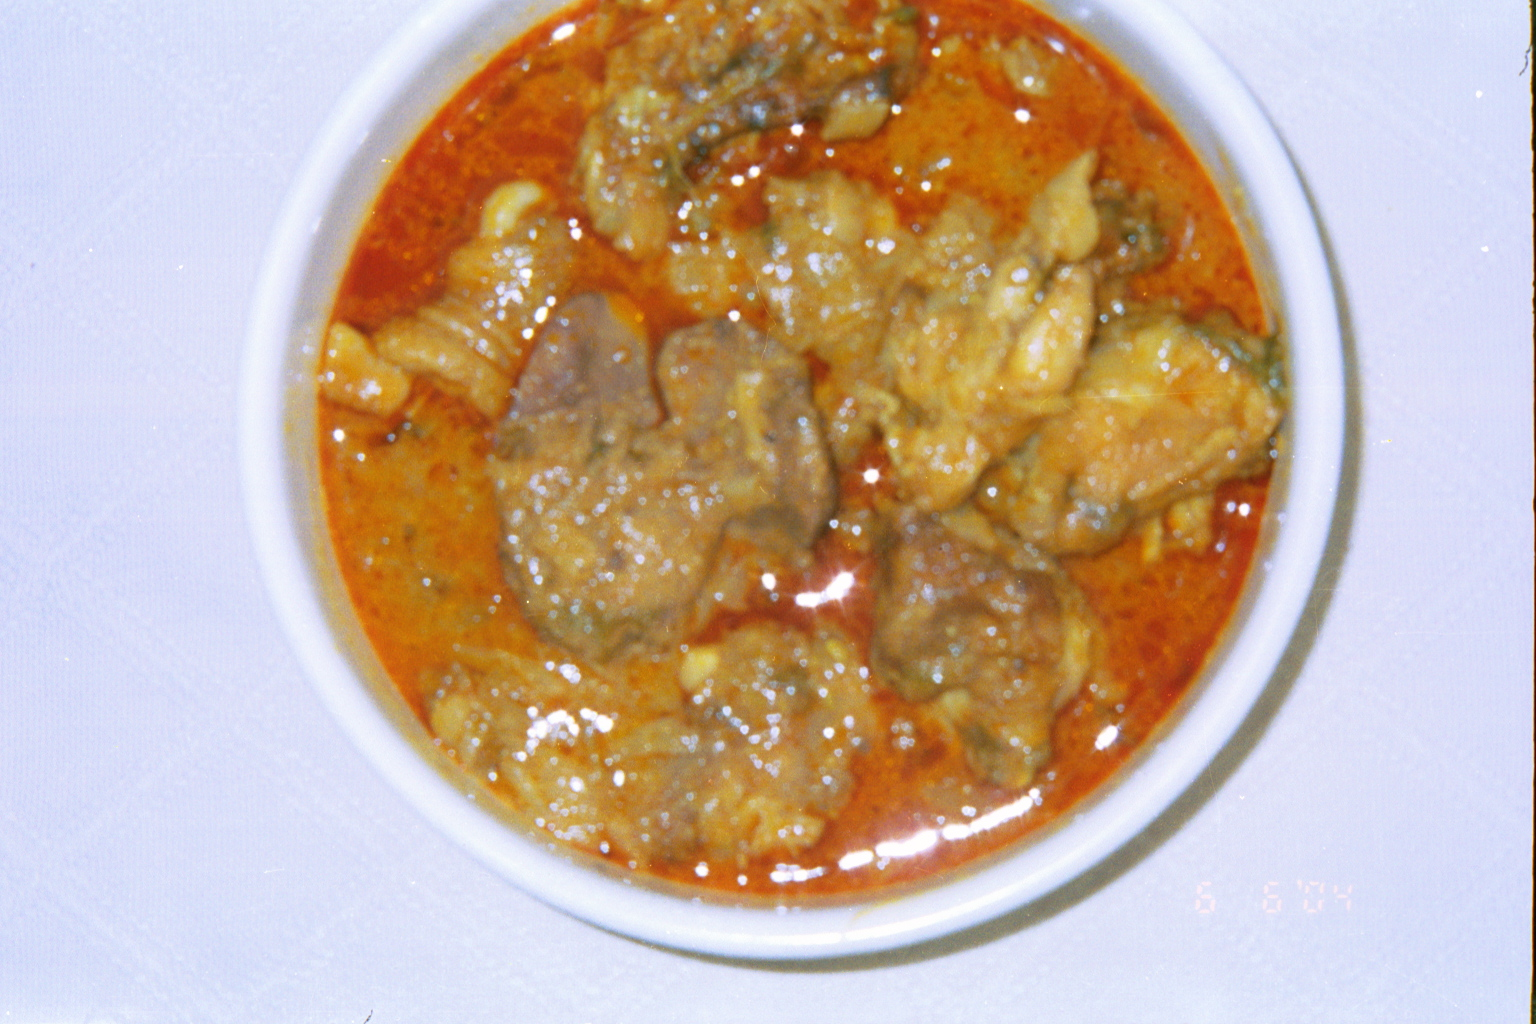 Meat curry anglo indian recipes by bridget white kumar for Anglo indian cuisine